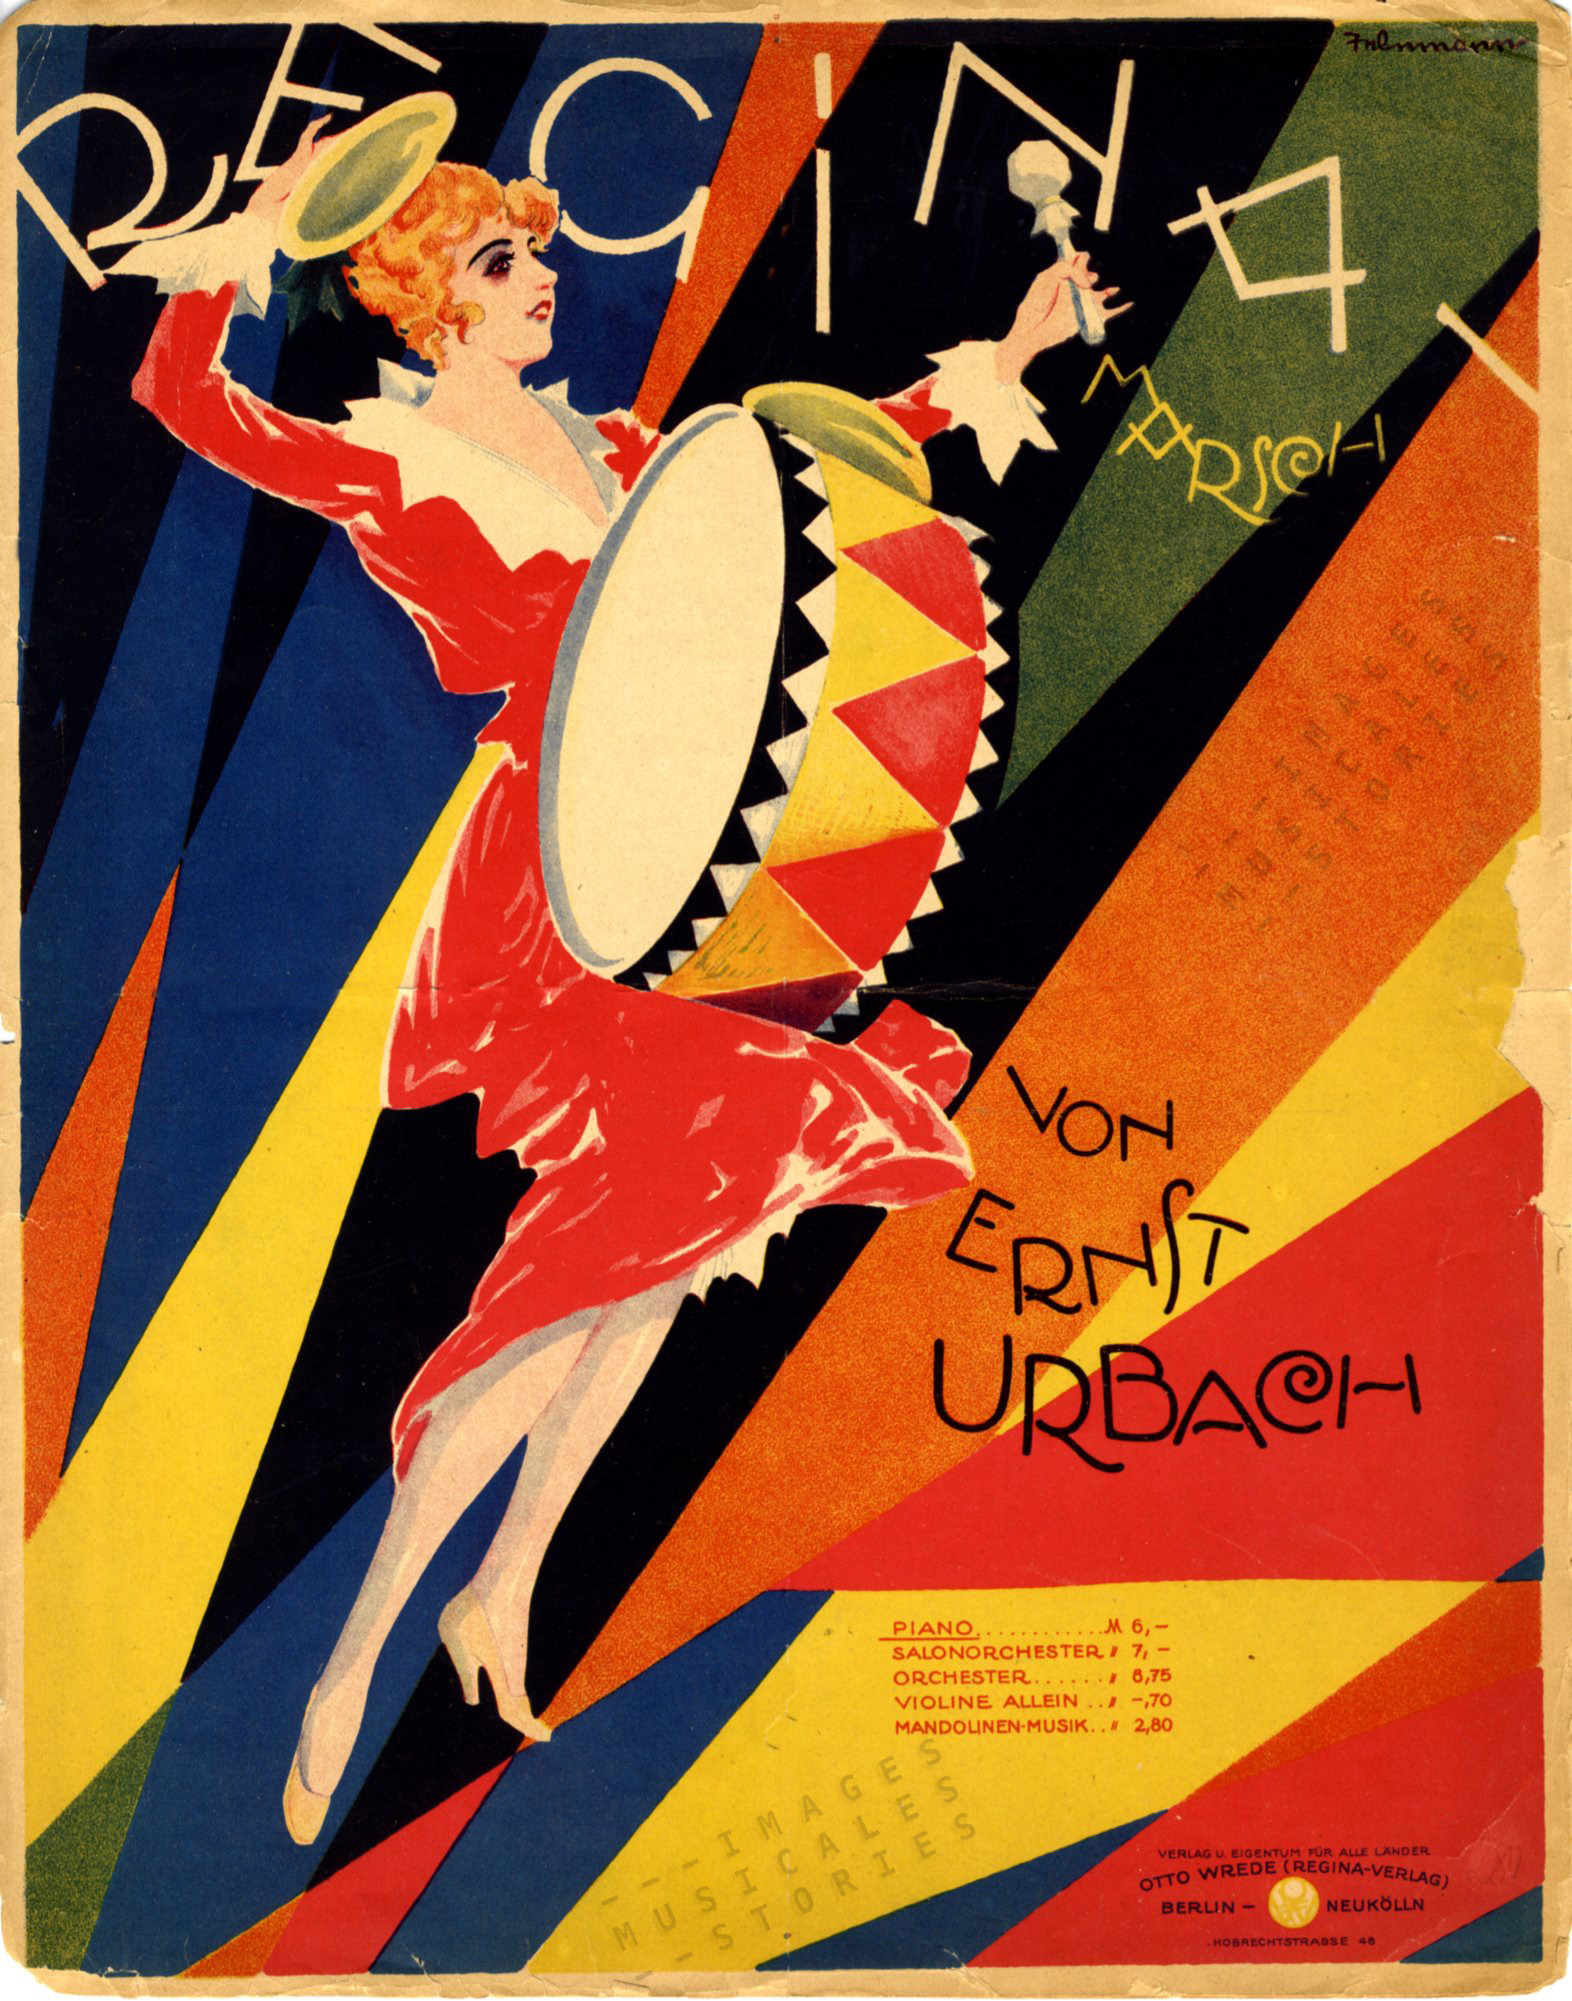 Sheet music cover illustrated by P. Telemann